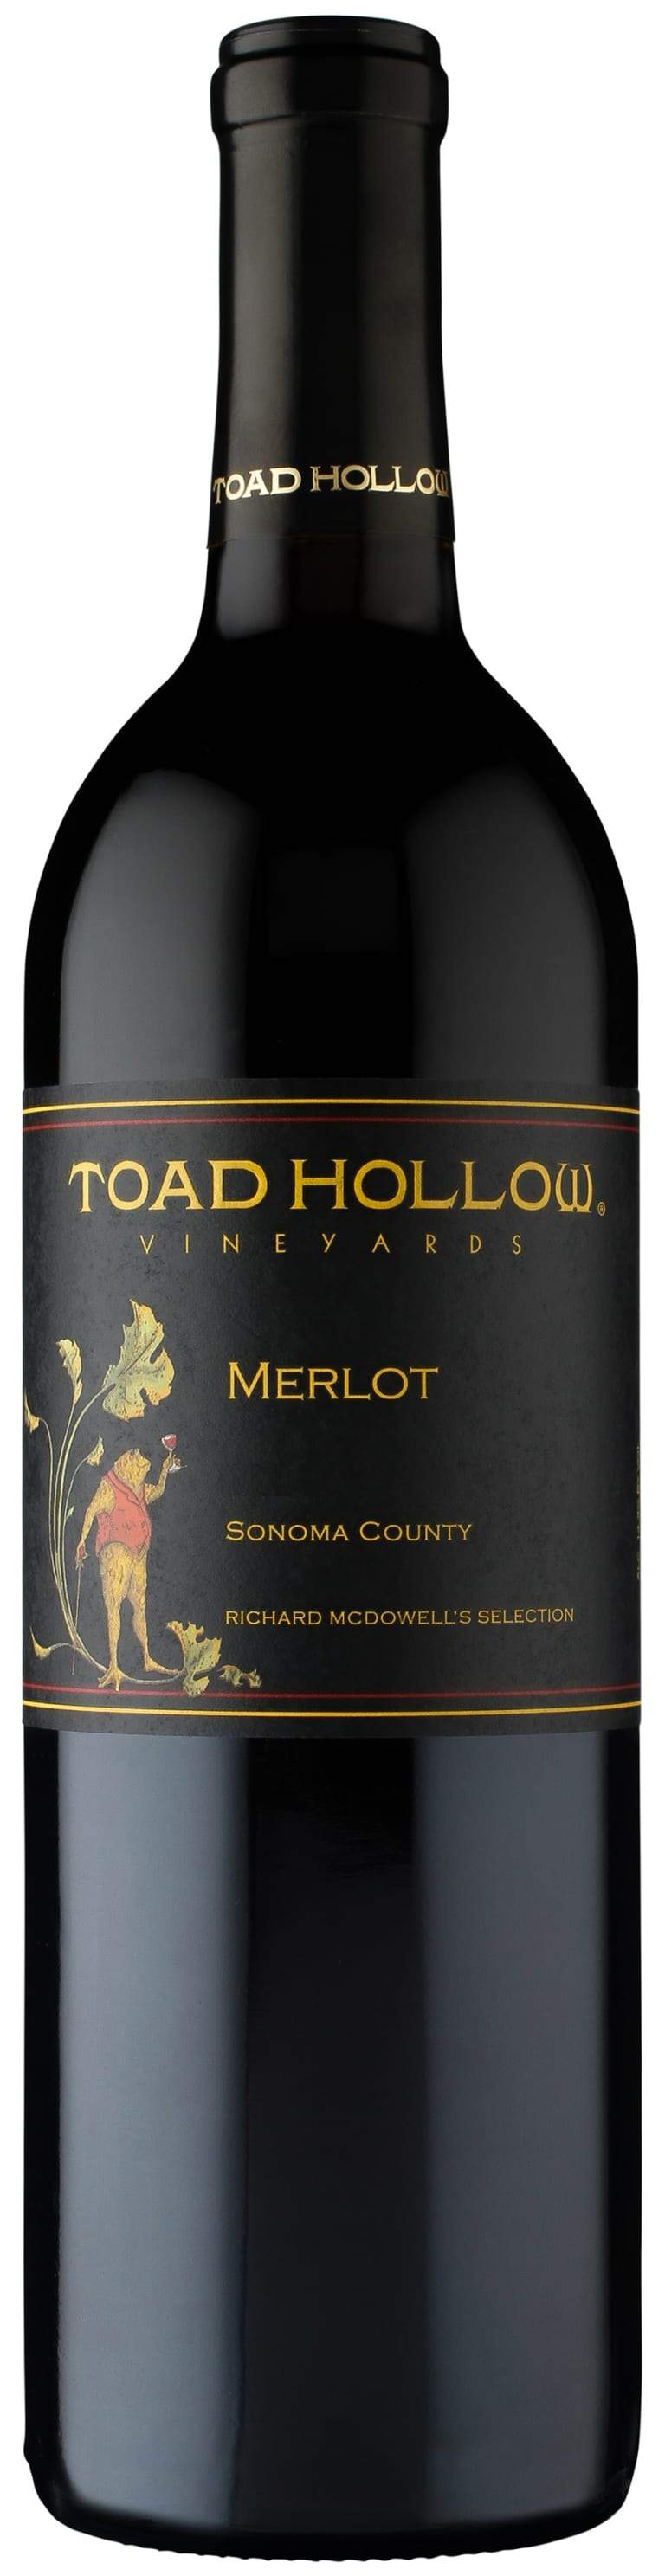 Toad Hollow Merlot Richard Mcdowell Vineyard 2016